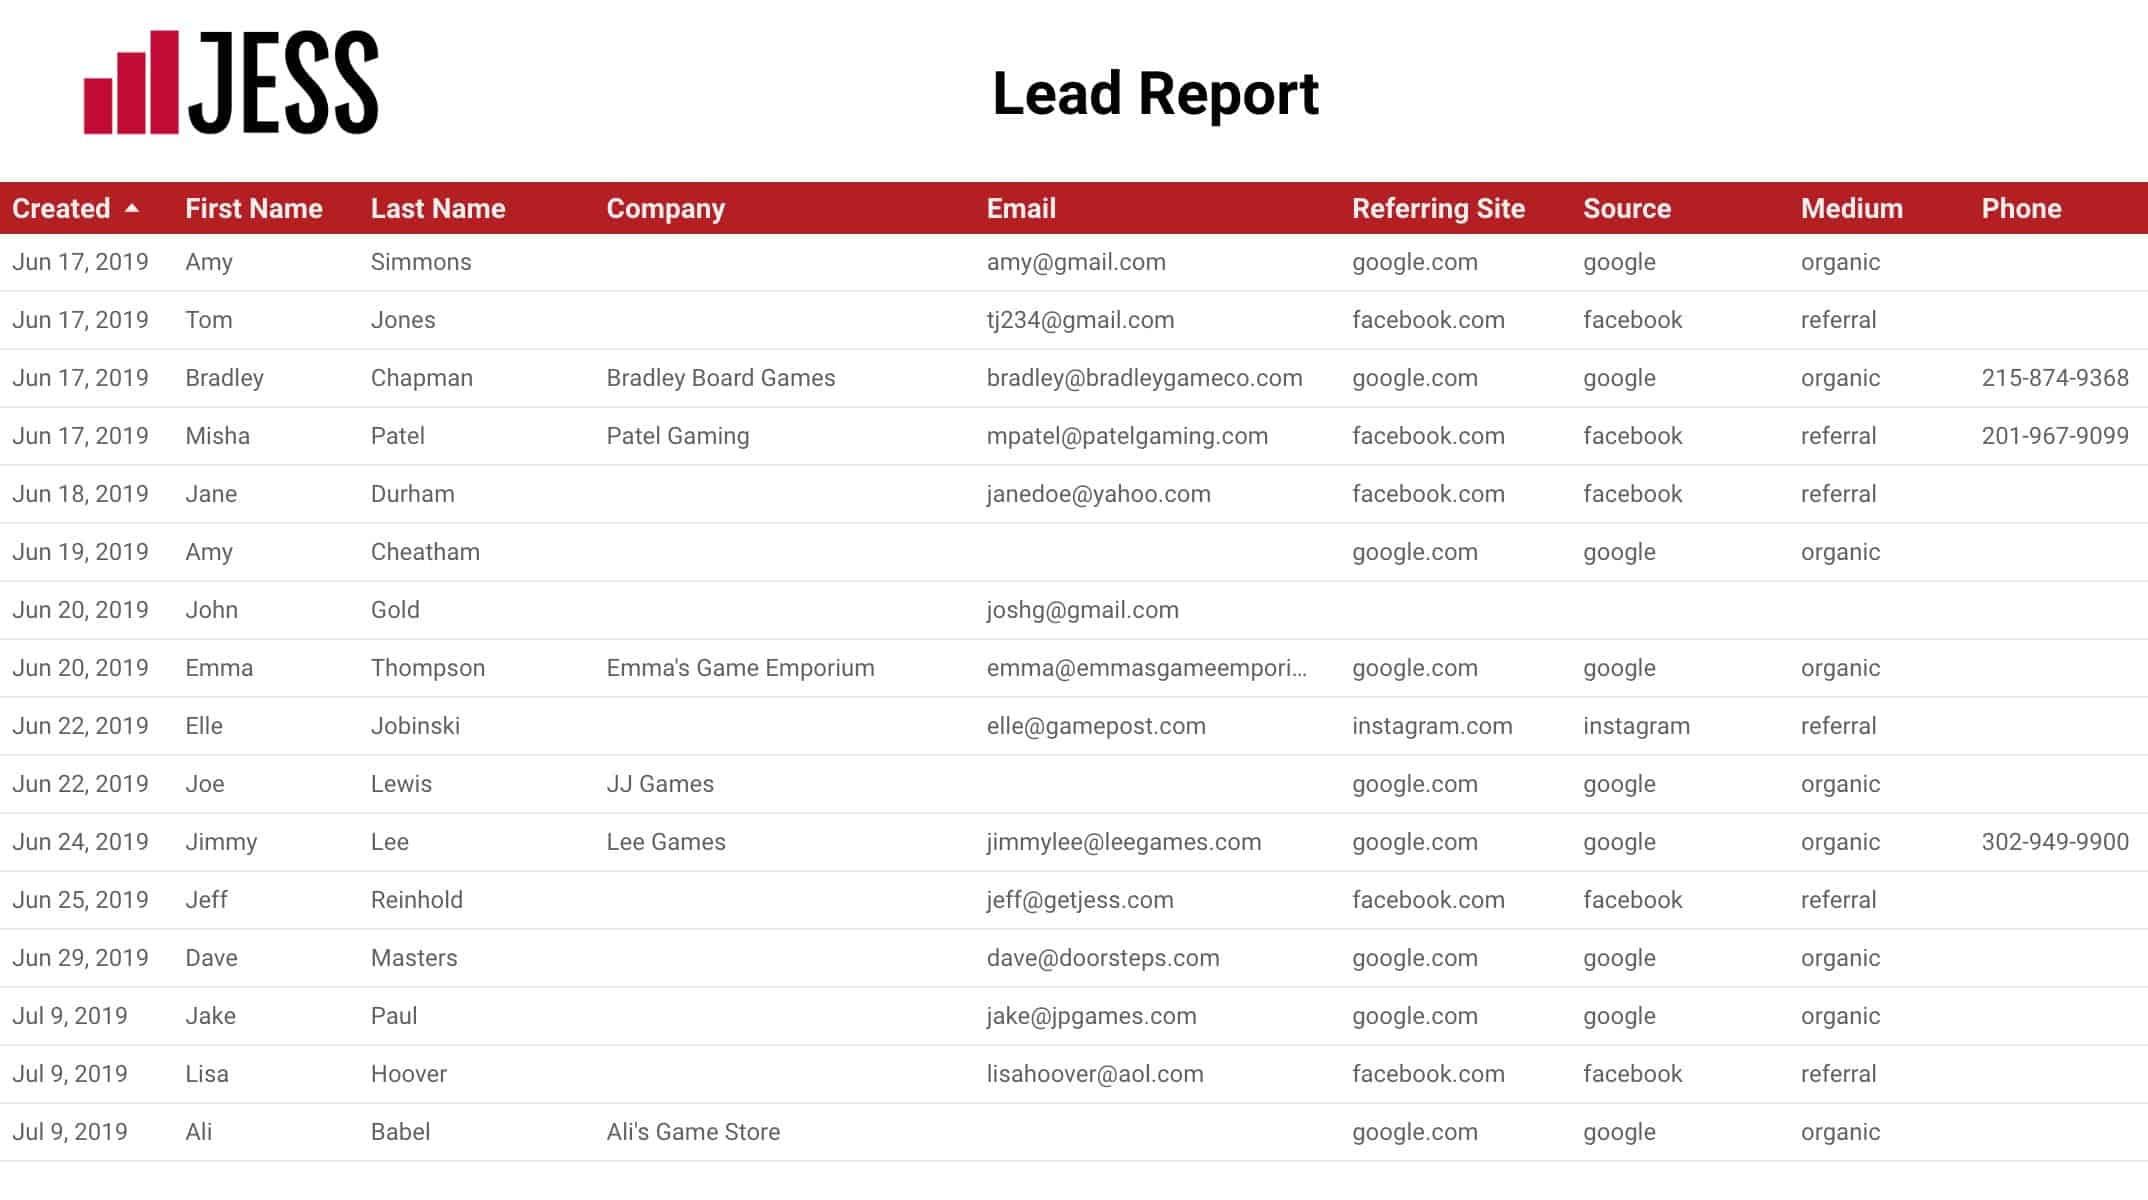 screenshot of the jess campaign leads report